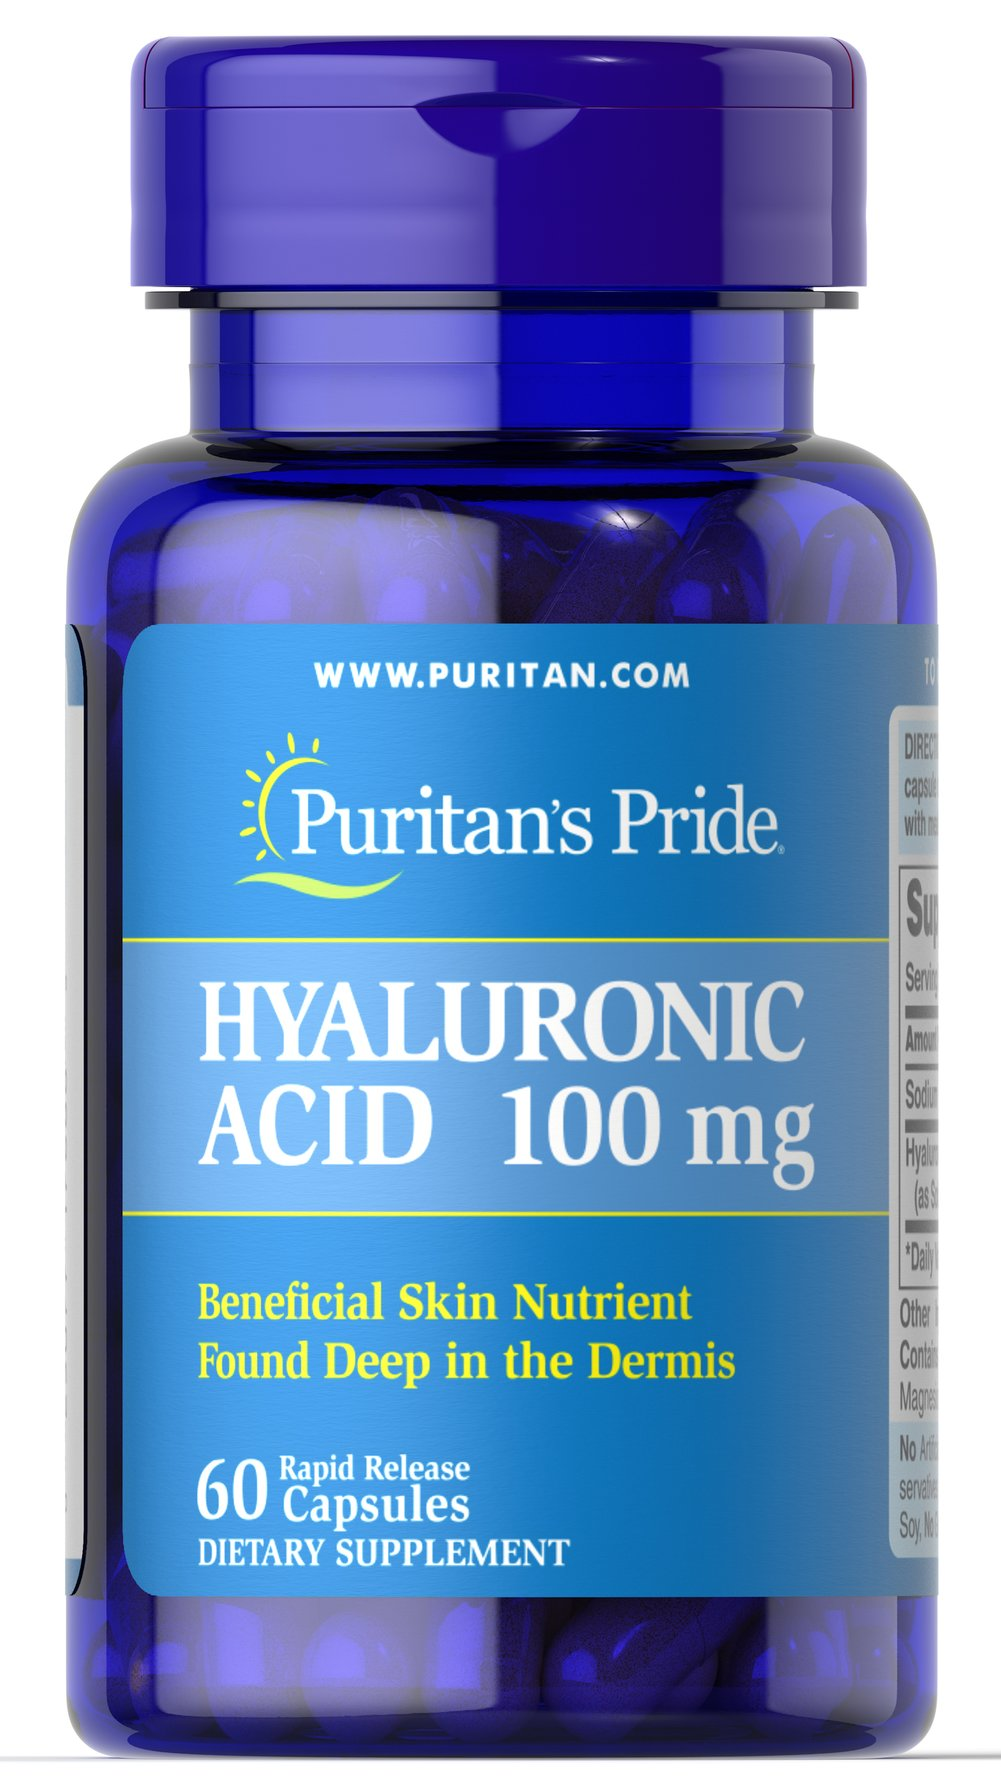 Hyaluronic Acid 100 mg Thumbnail Alternate Bottle View